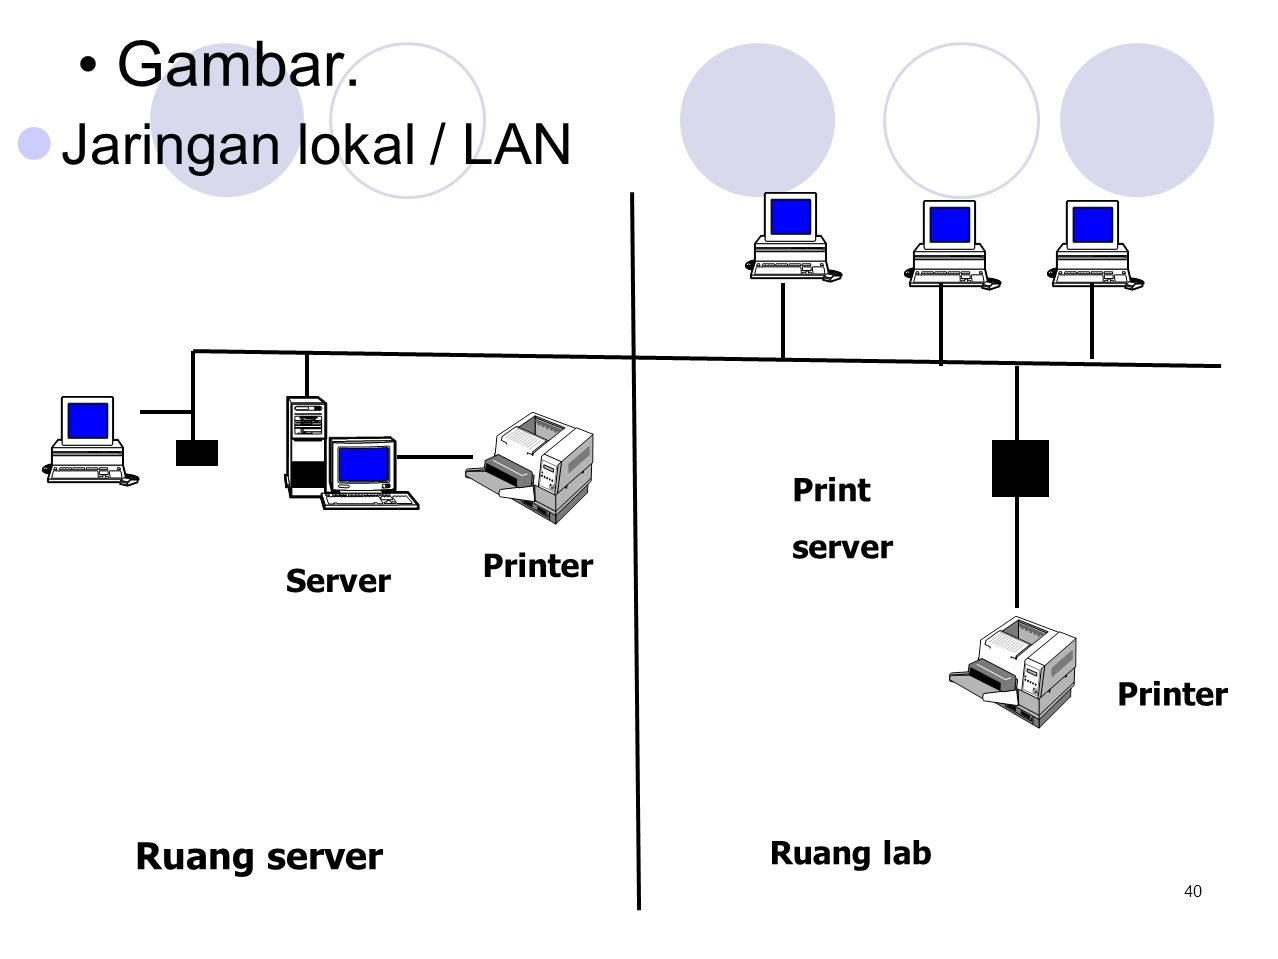 Gambar. Jaringan lokal / LAN Ruang server Print server Printer Server